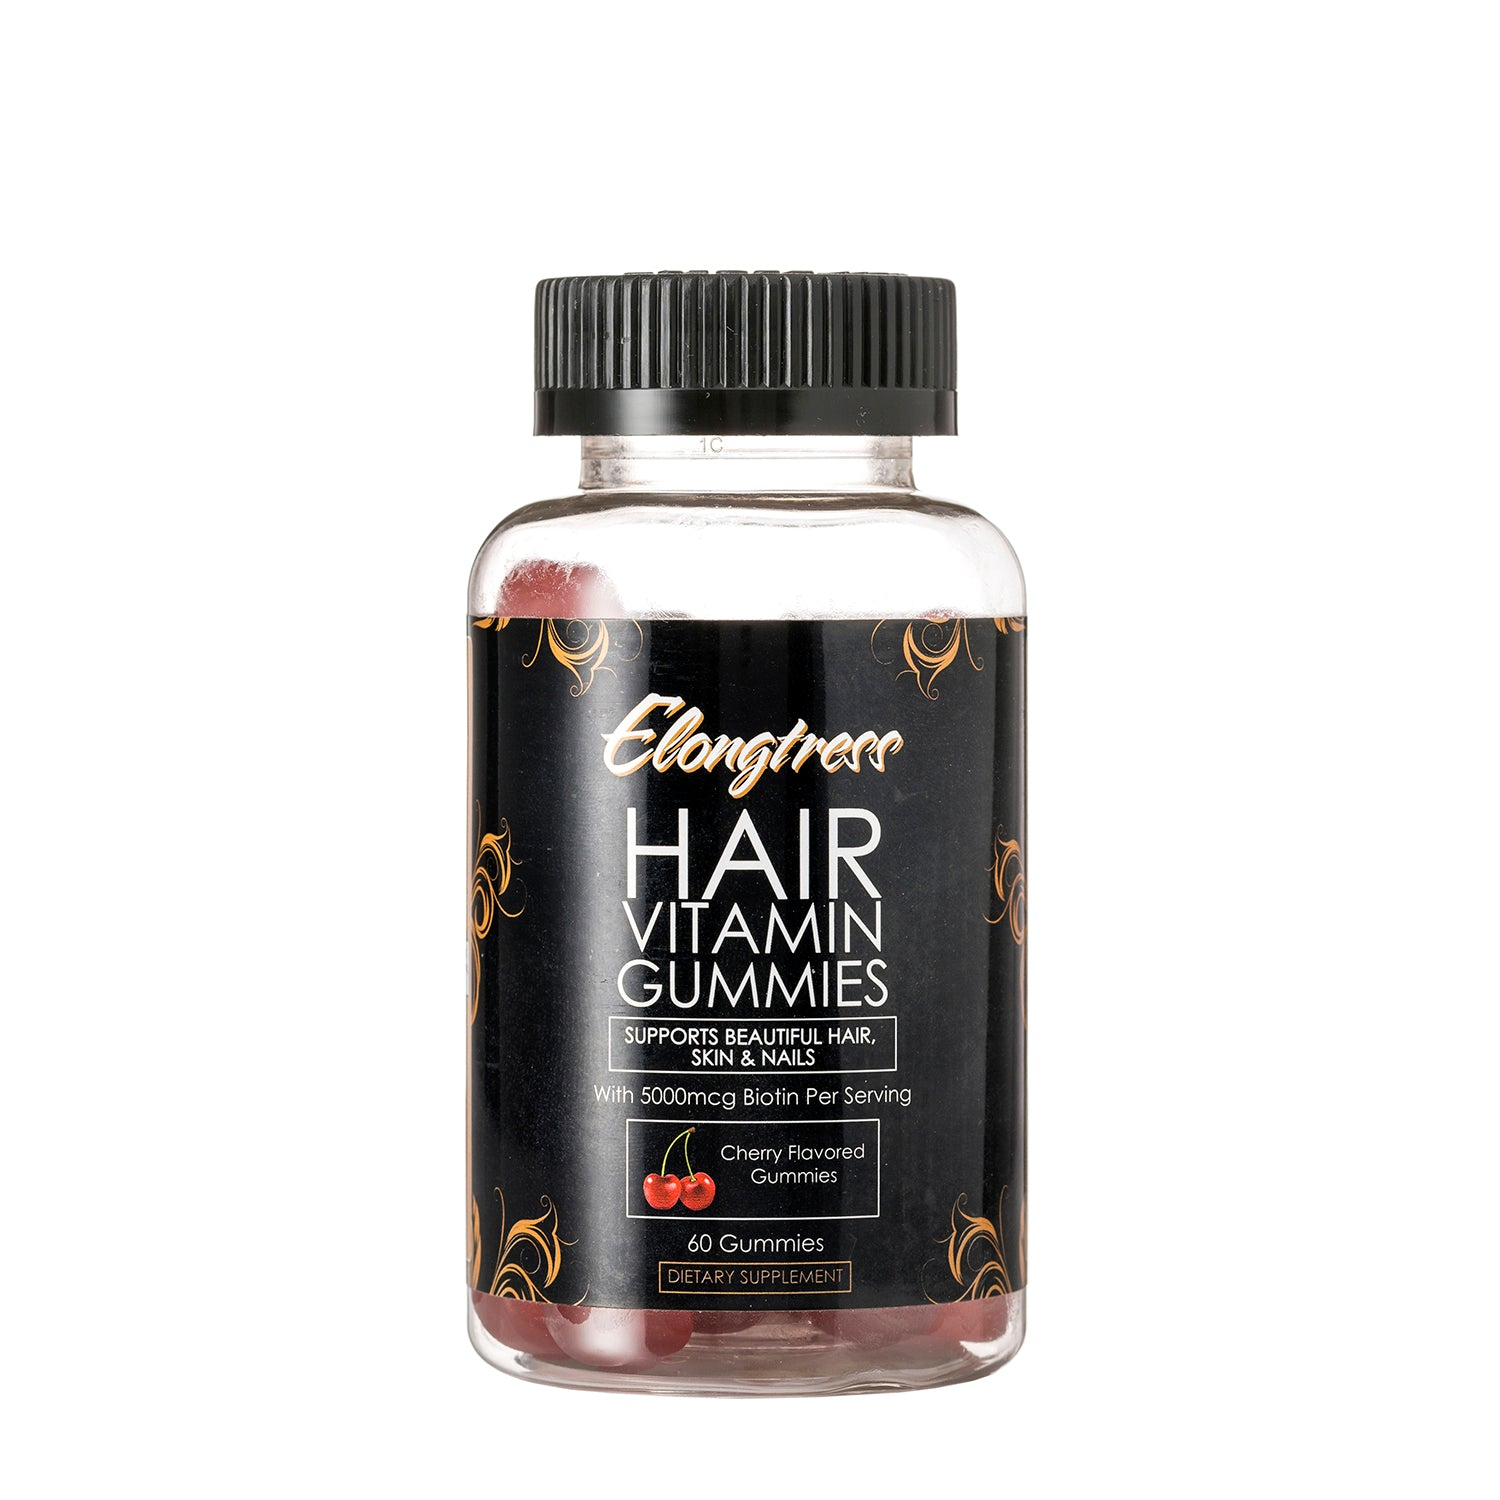 Elongtress Hair Vitamin Gummies